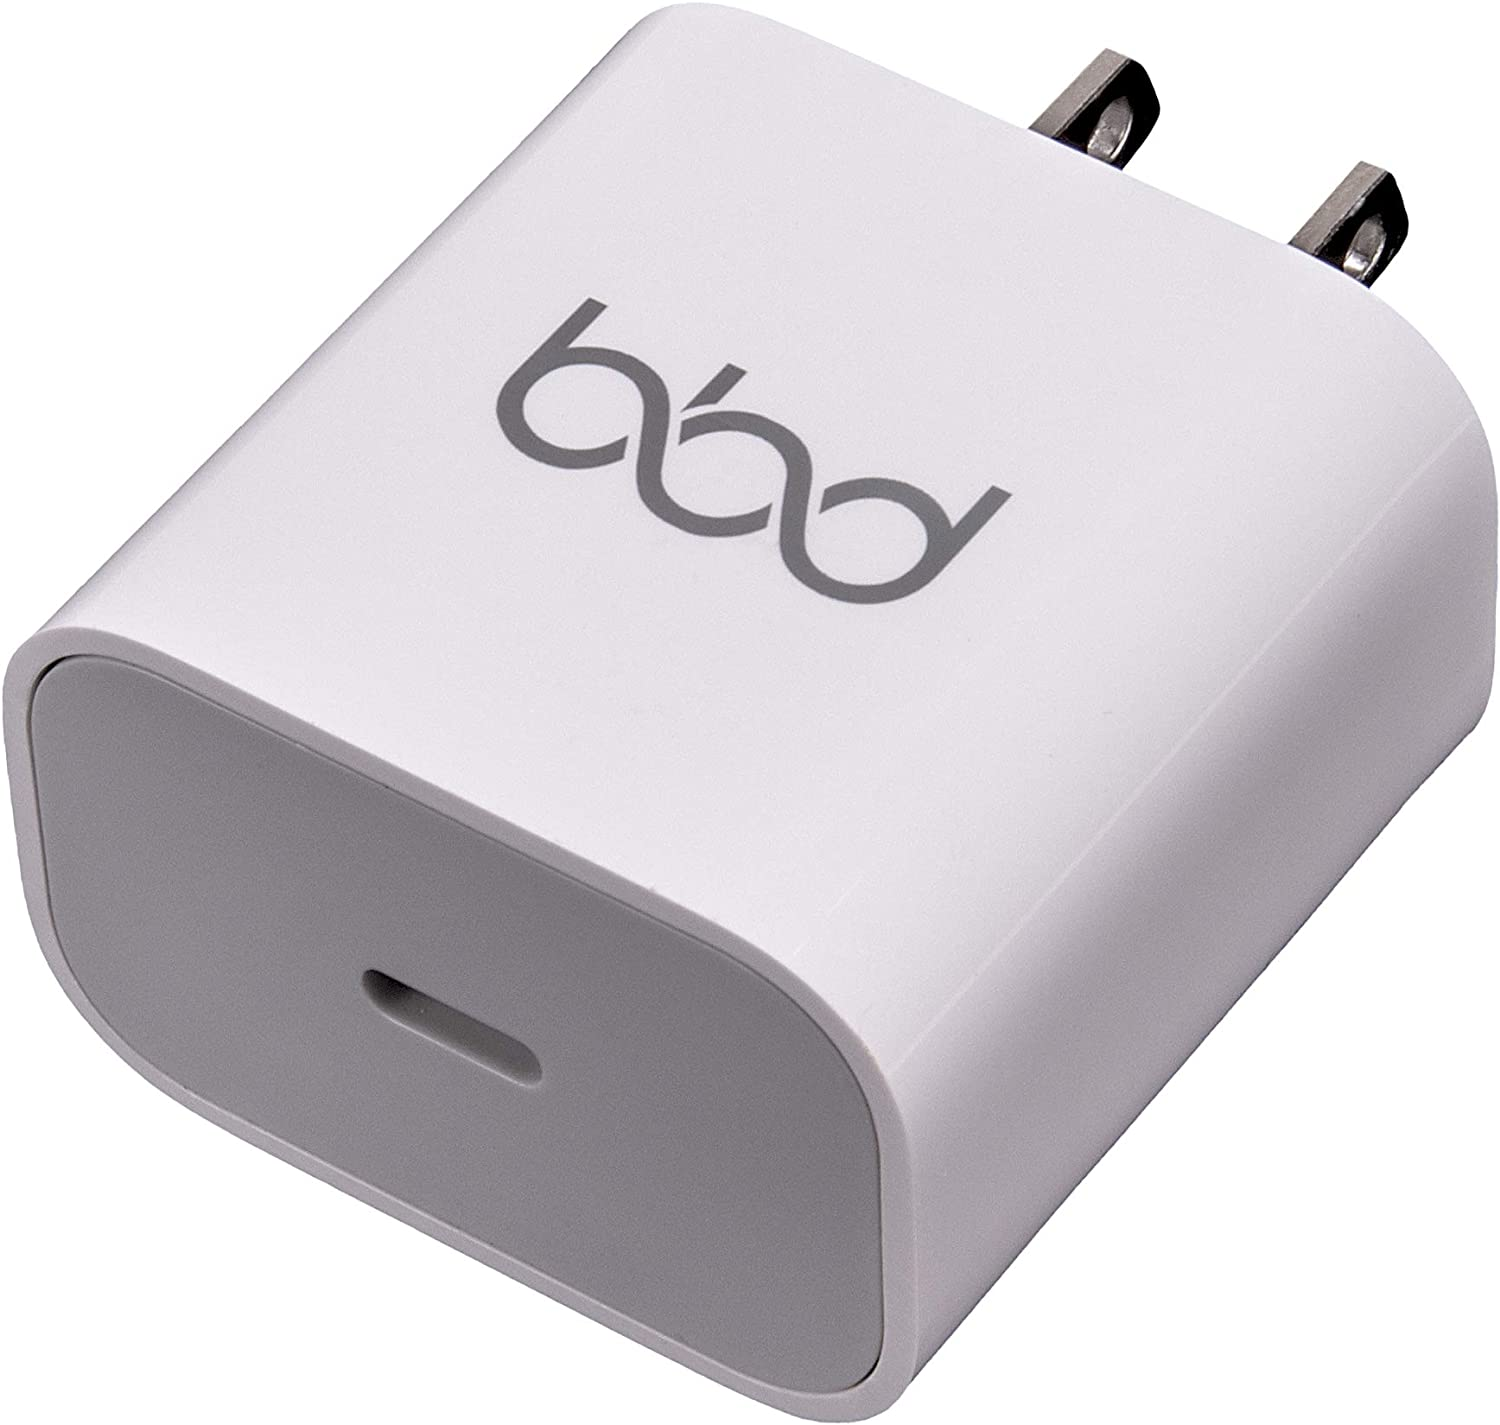 Galaxy Note 10 Plus//Note 10//9 Samsung Galaxy Fast Charging Type-C USB Adapter for iPad Galaxy S20 Series LG and More USB-C 18W Wall Charger by Blue Beat Digital iPhone 11 Pro Max//11 Pro Pixel